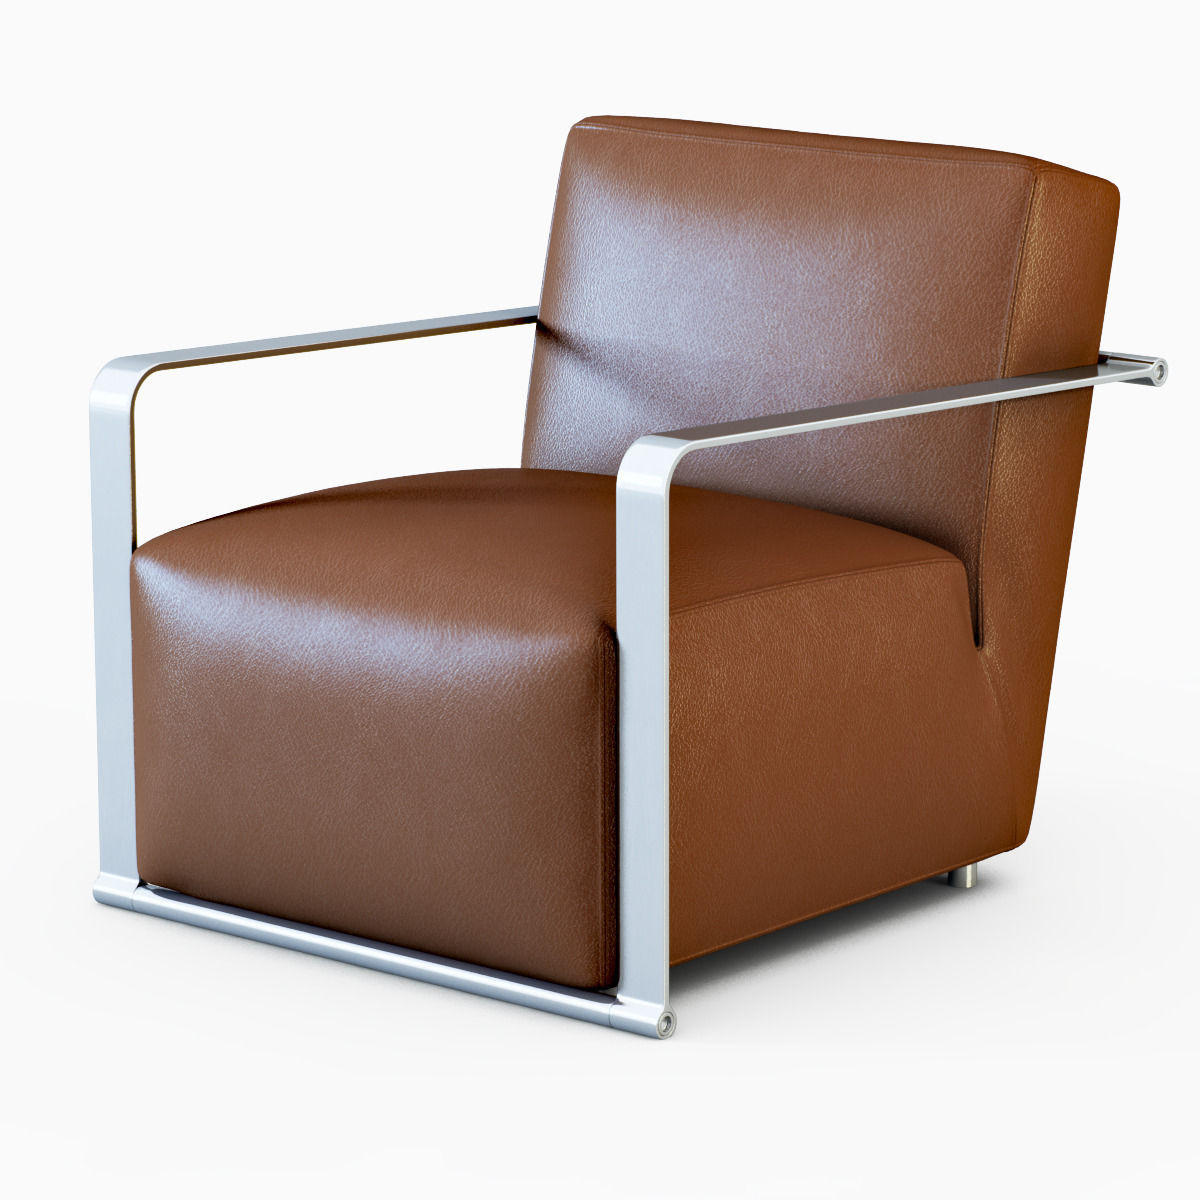 Armchair brando by david casadesus 3d model max cgtrader com